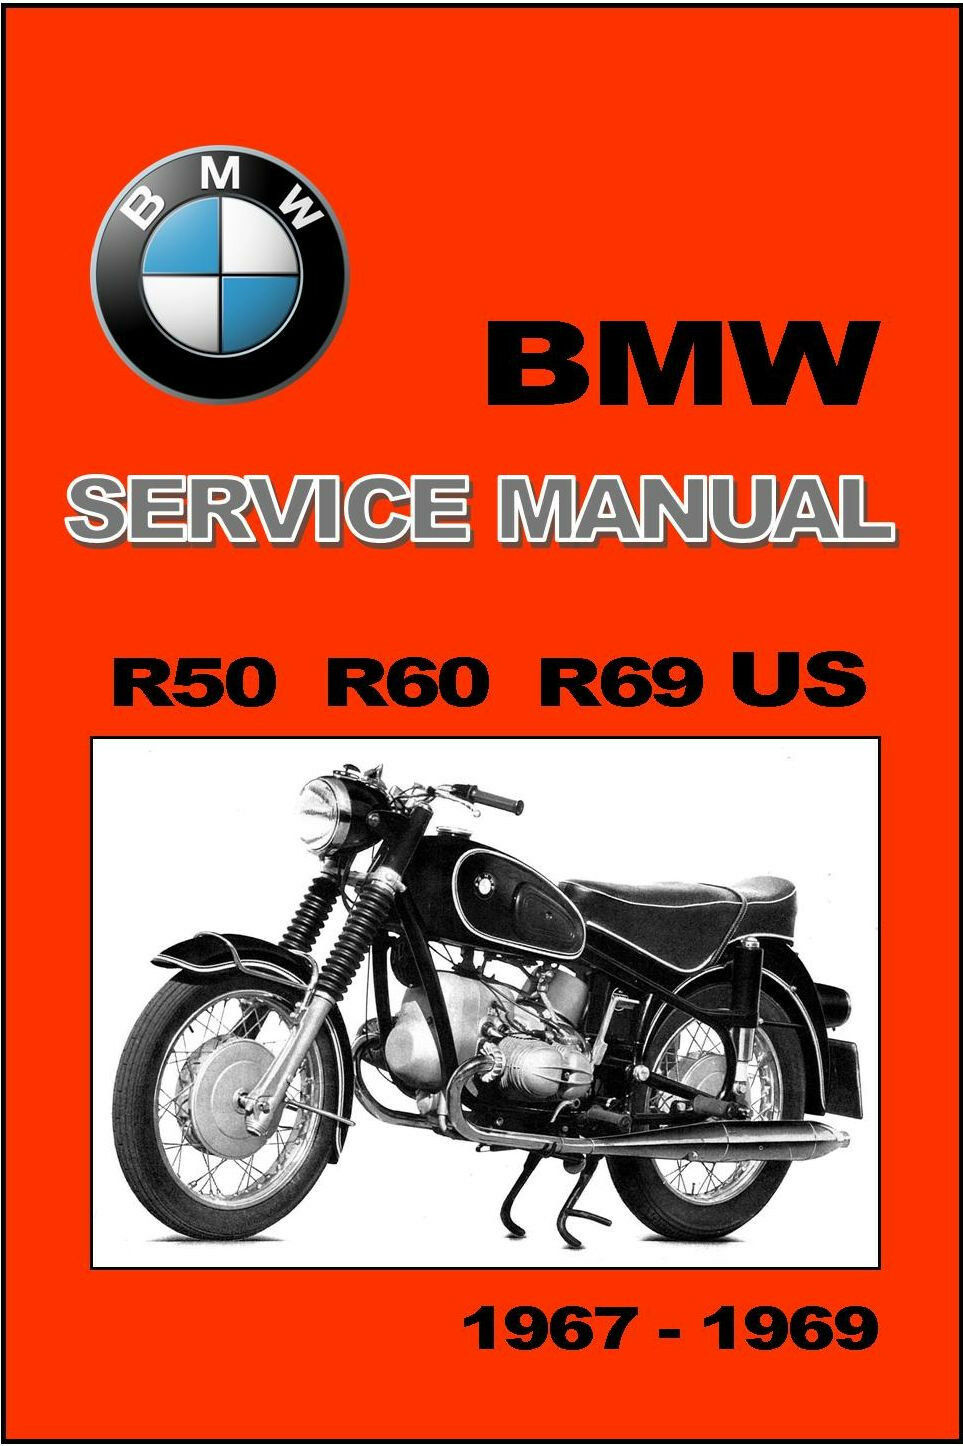 bmw workshop manual r50 us r60 us r69 us r69s us 1967 1968 1969 rh picclick com mini cooper r50 workshop manual nissan terrano r50 workshop manual